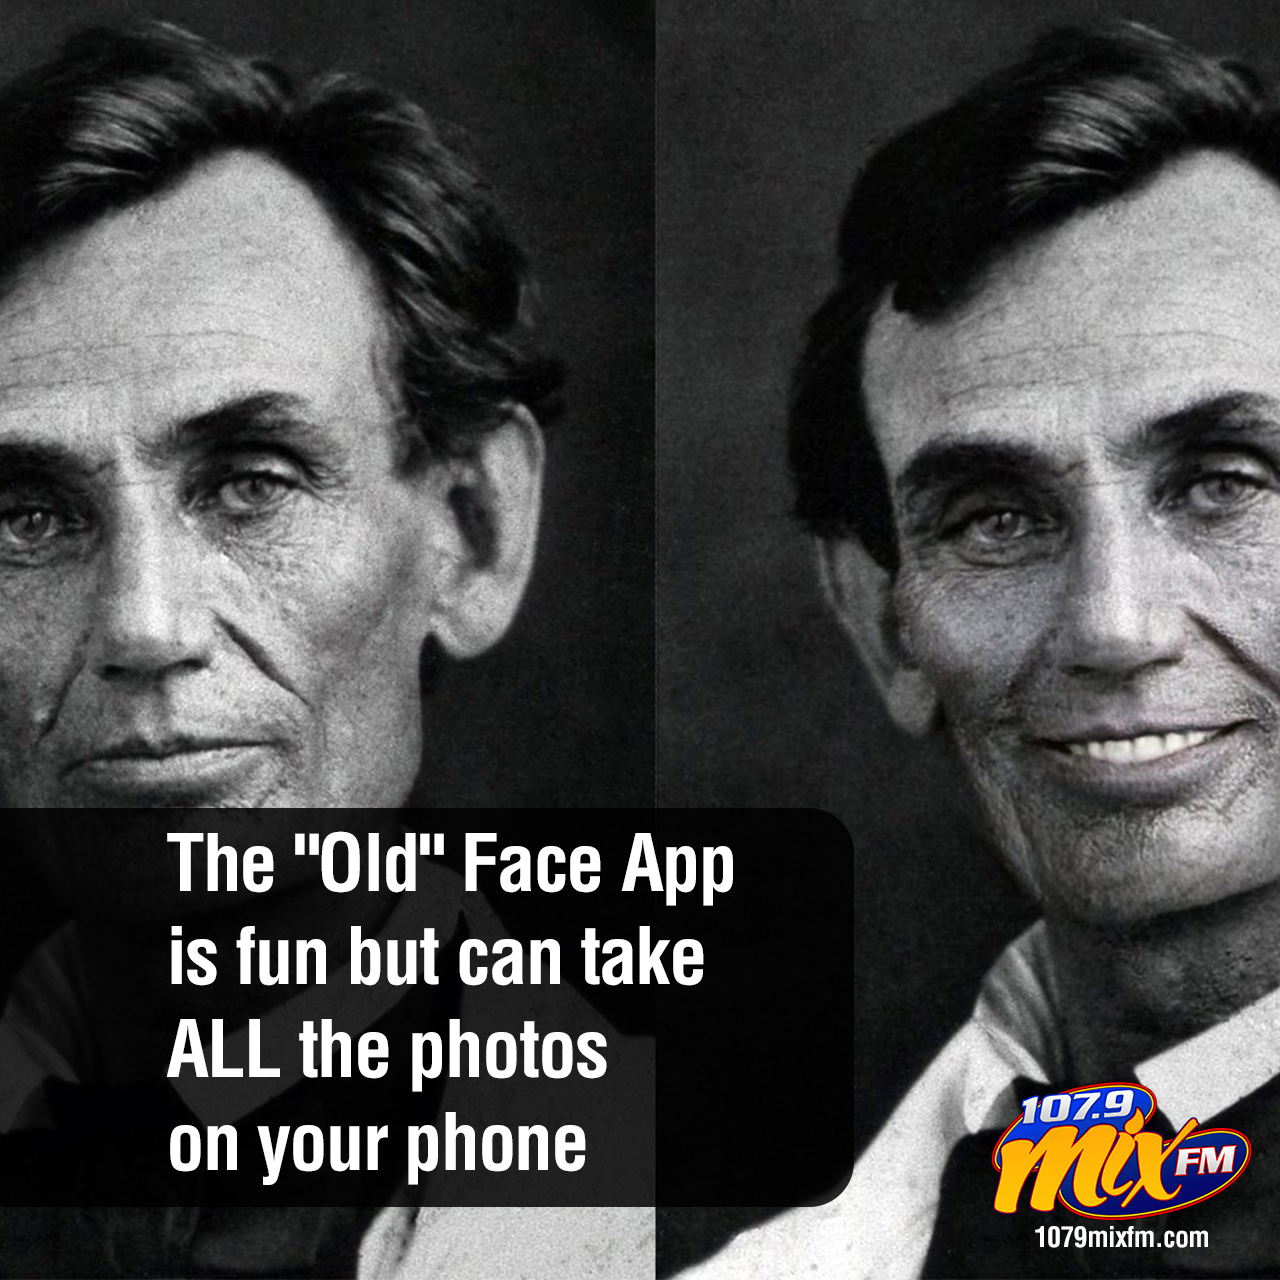 """The """"Old"""" Face App while fun can potentially take ALL the photos on your phone"""